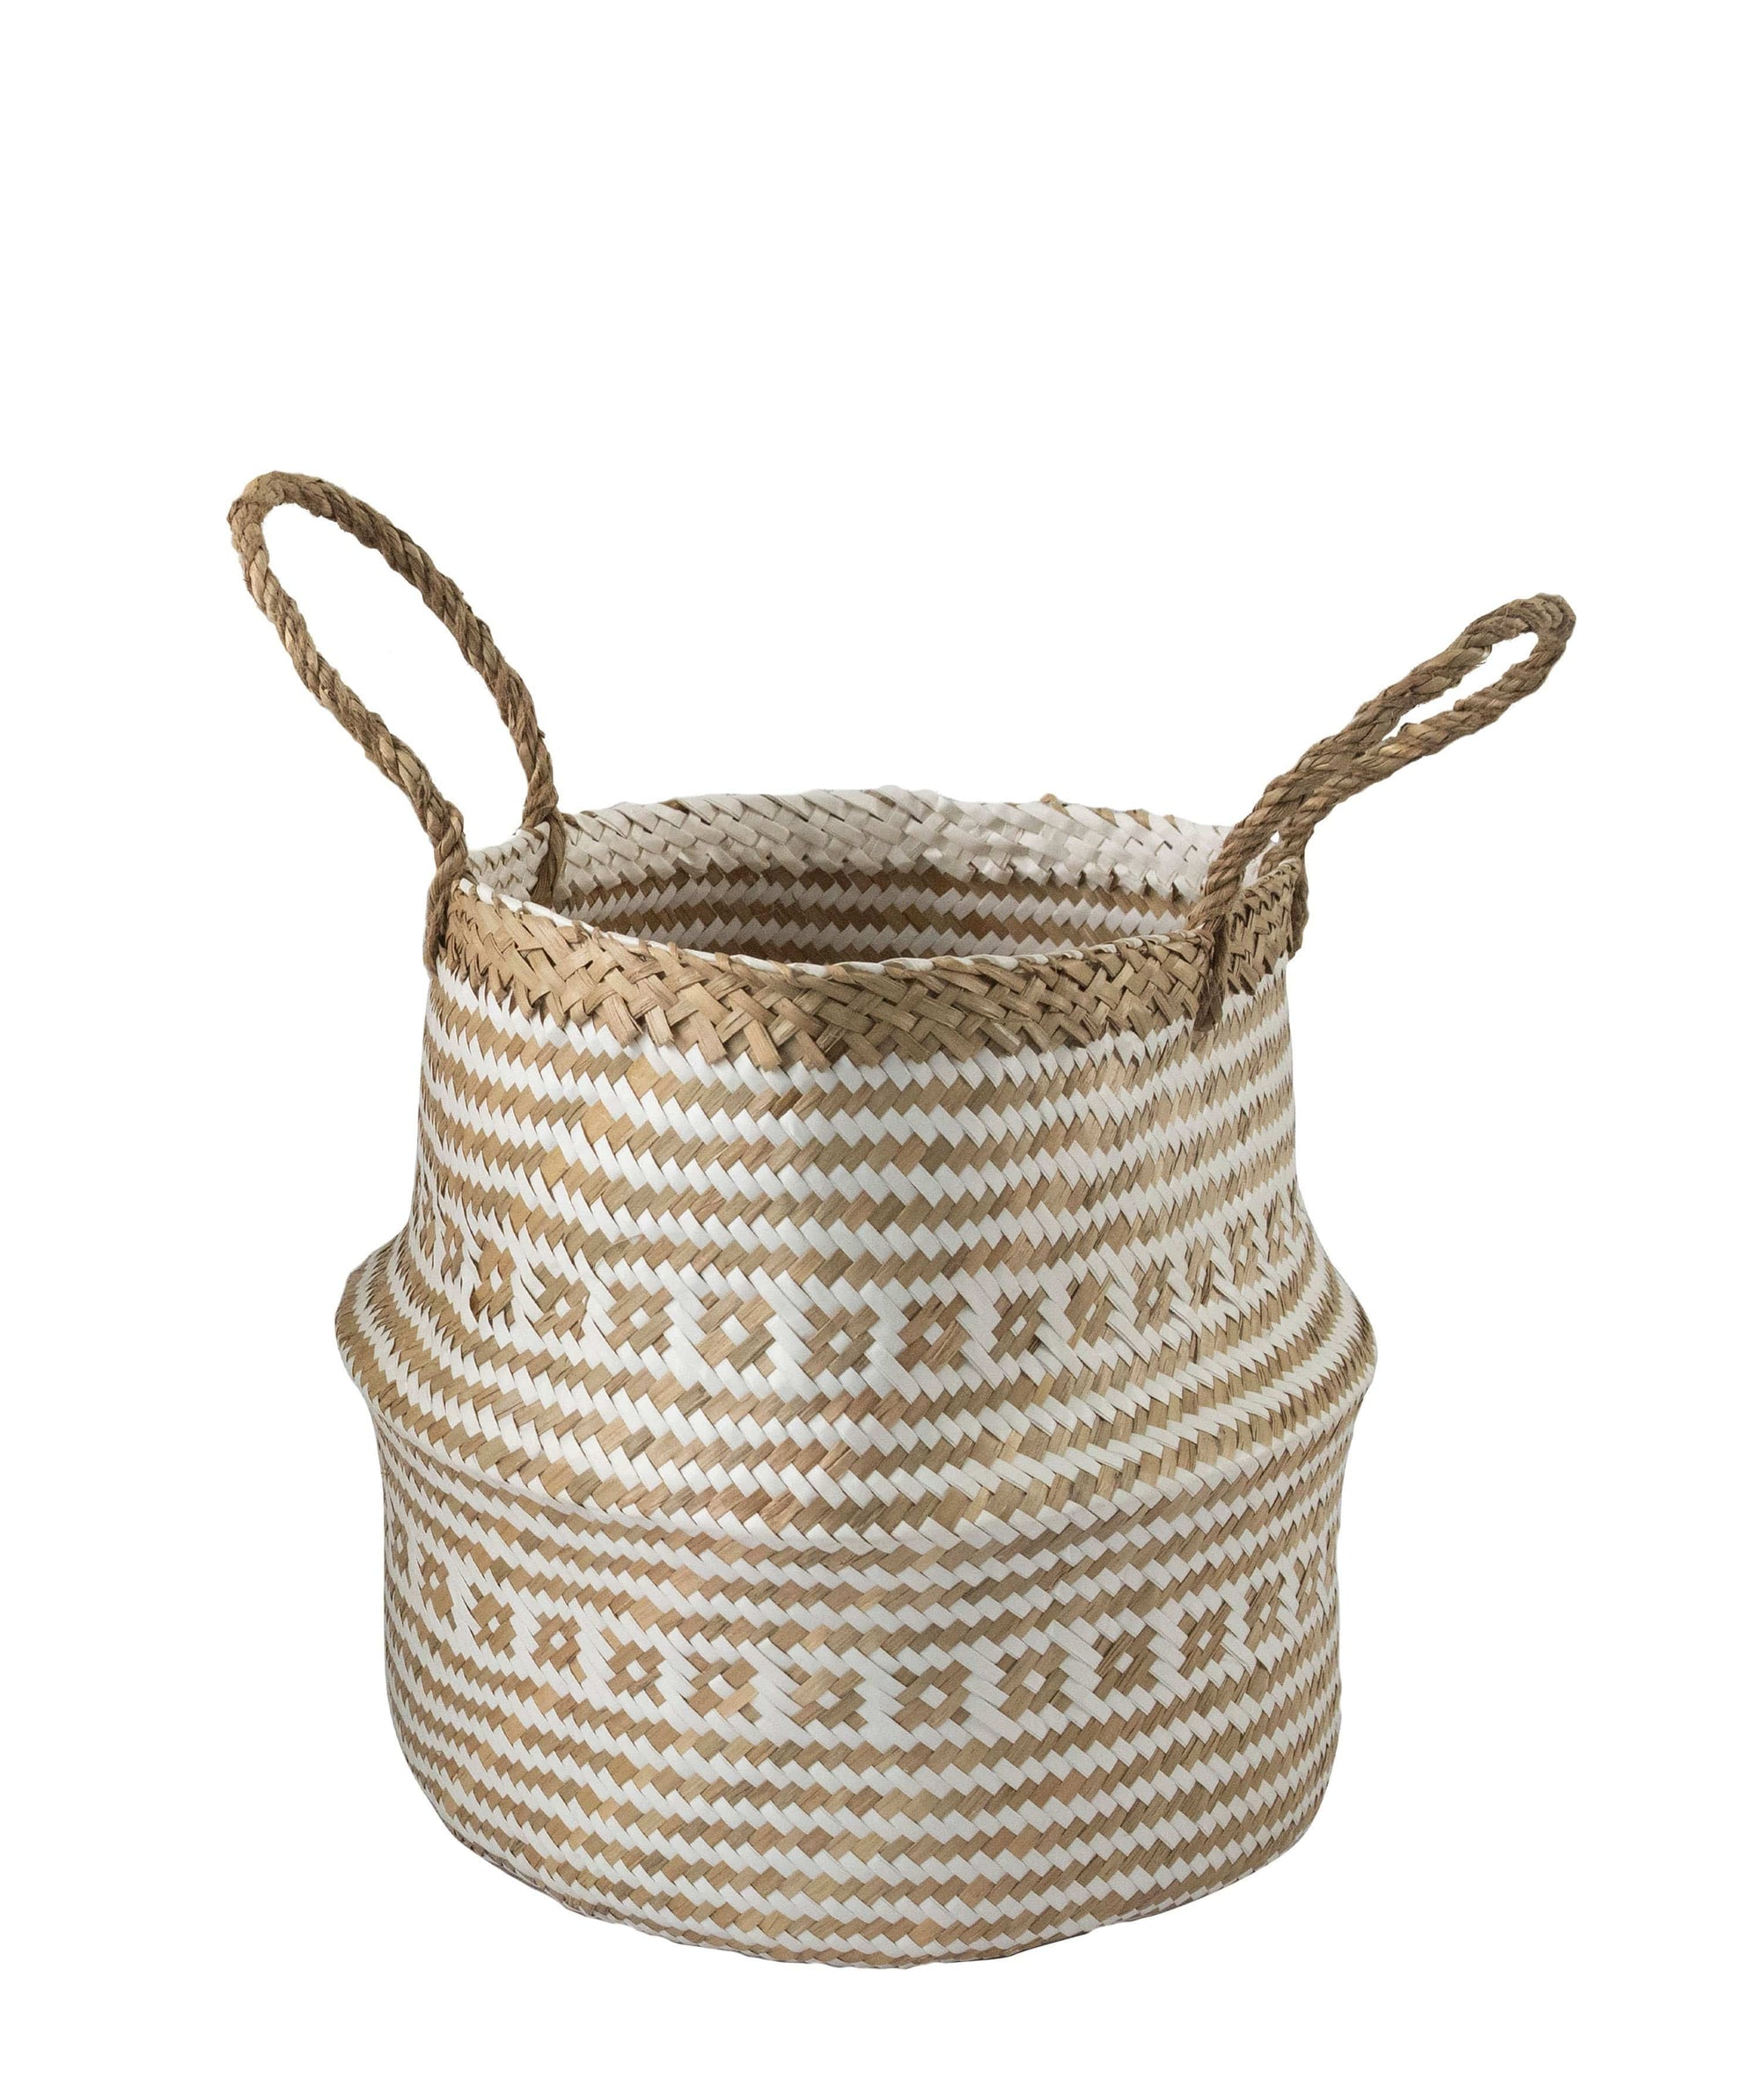 Made Terra Belly Baskets White Brocade Belly Basket with Handles | Woven Baskets for Laundry Storage & Home Supplies (Small)